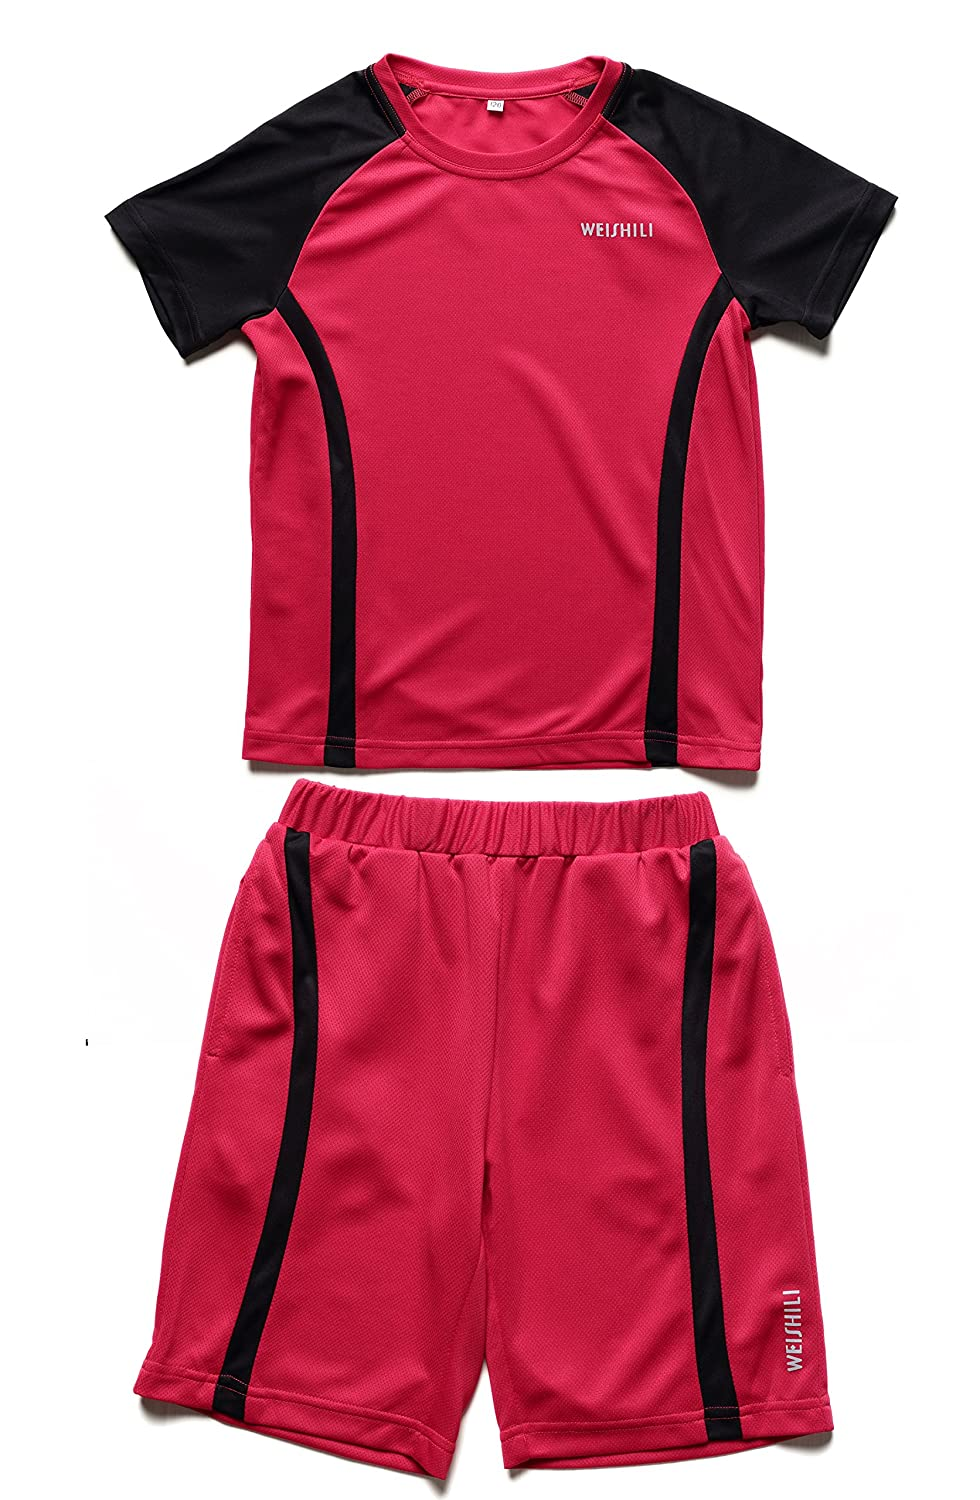 WEISHILI Football Shirt and Short Set Children (3 Colors to Choose: Blue, Cornflower Blue, Red)